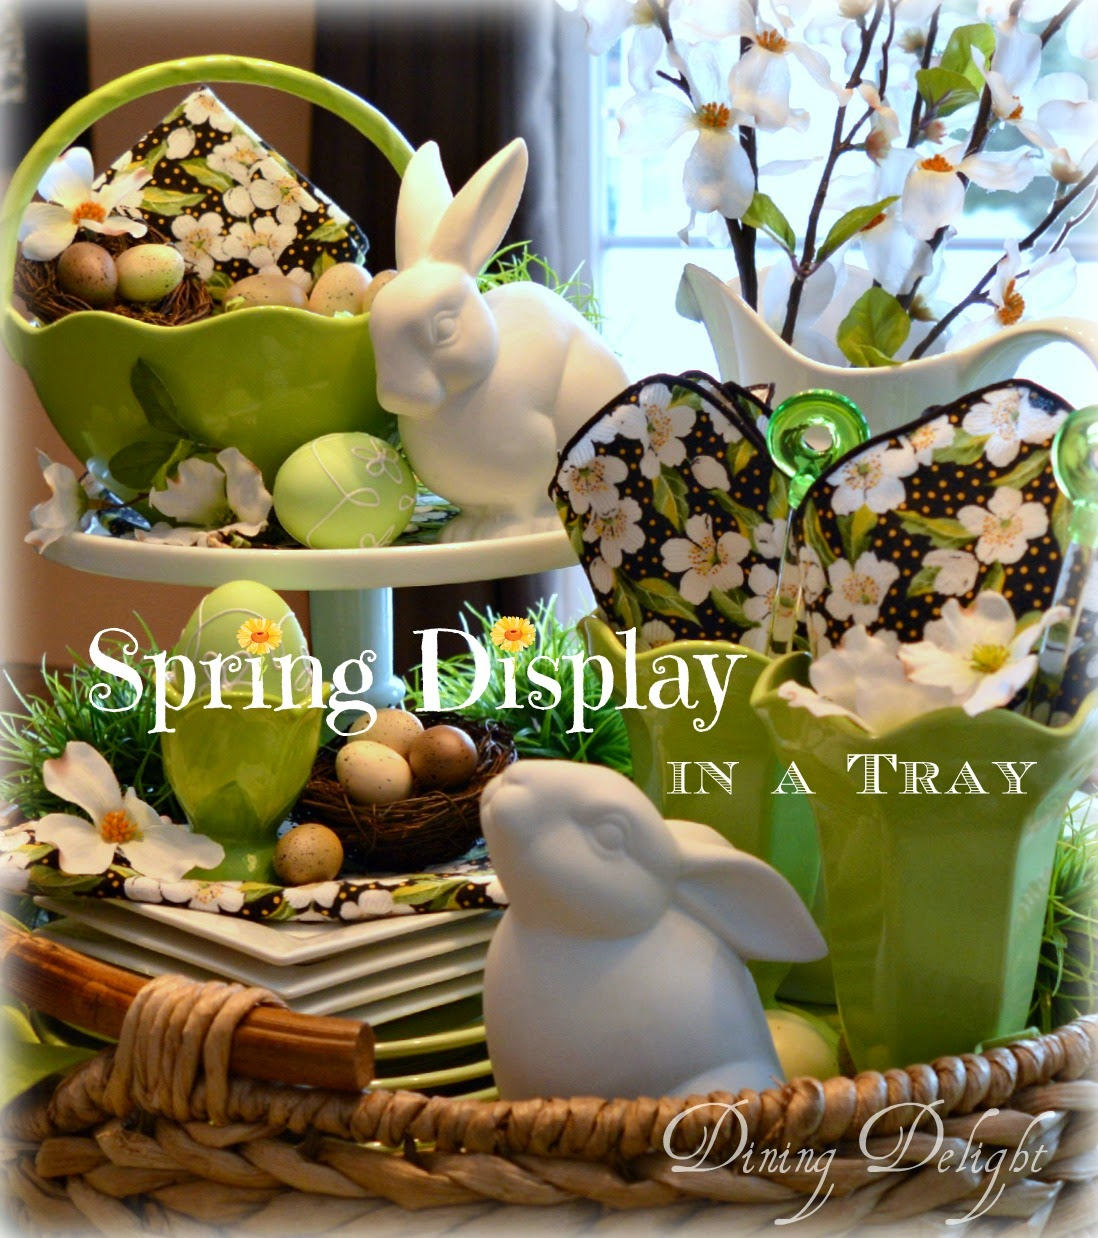 Spring Display in a Tray